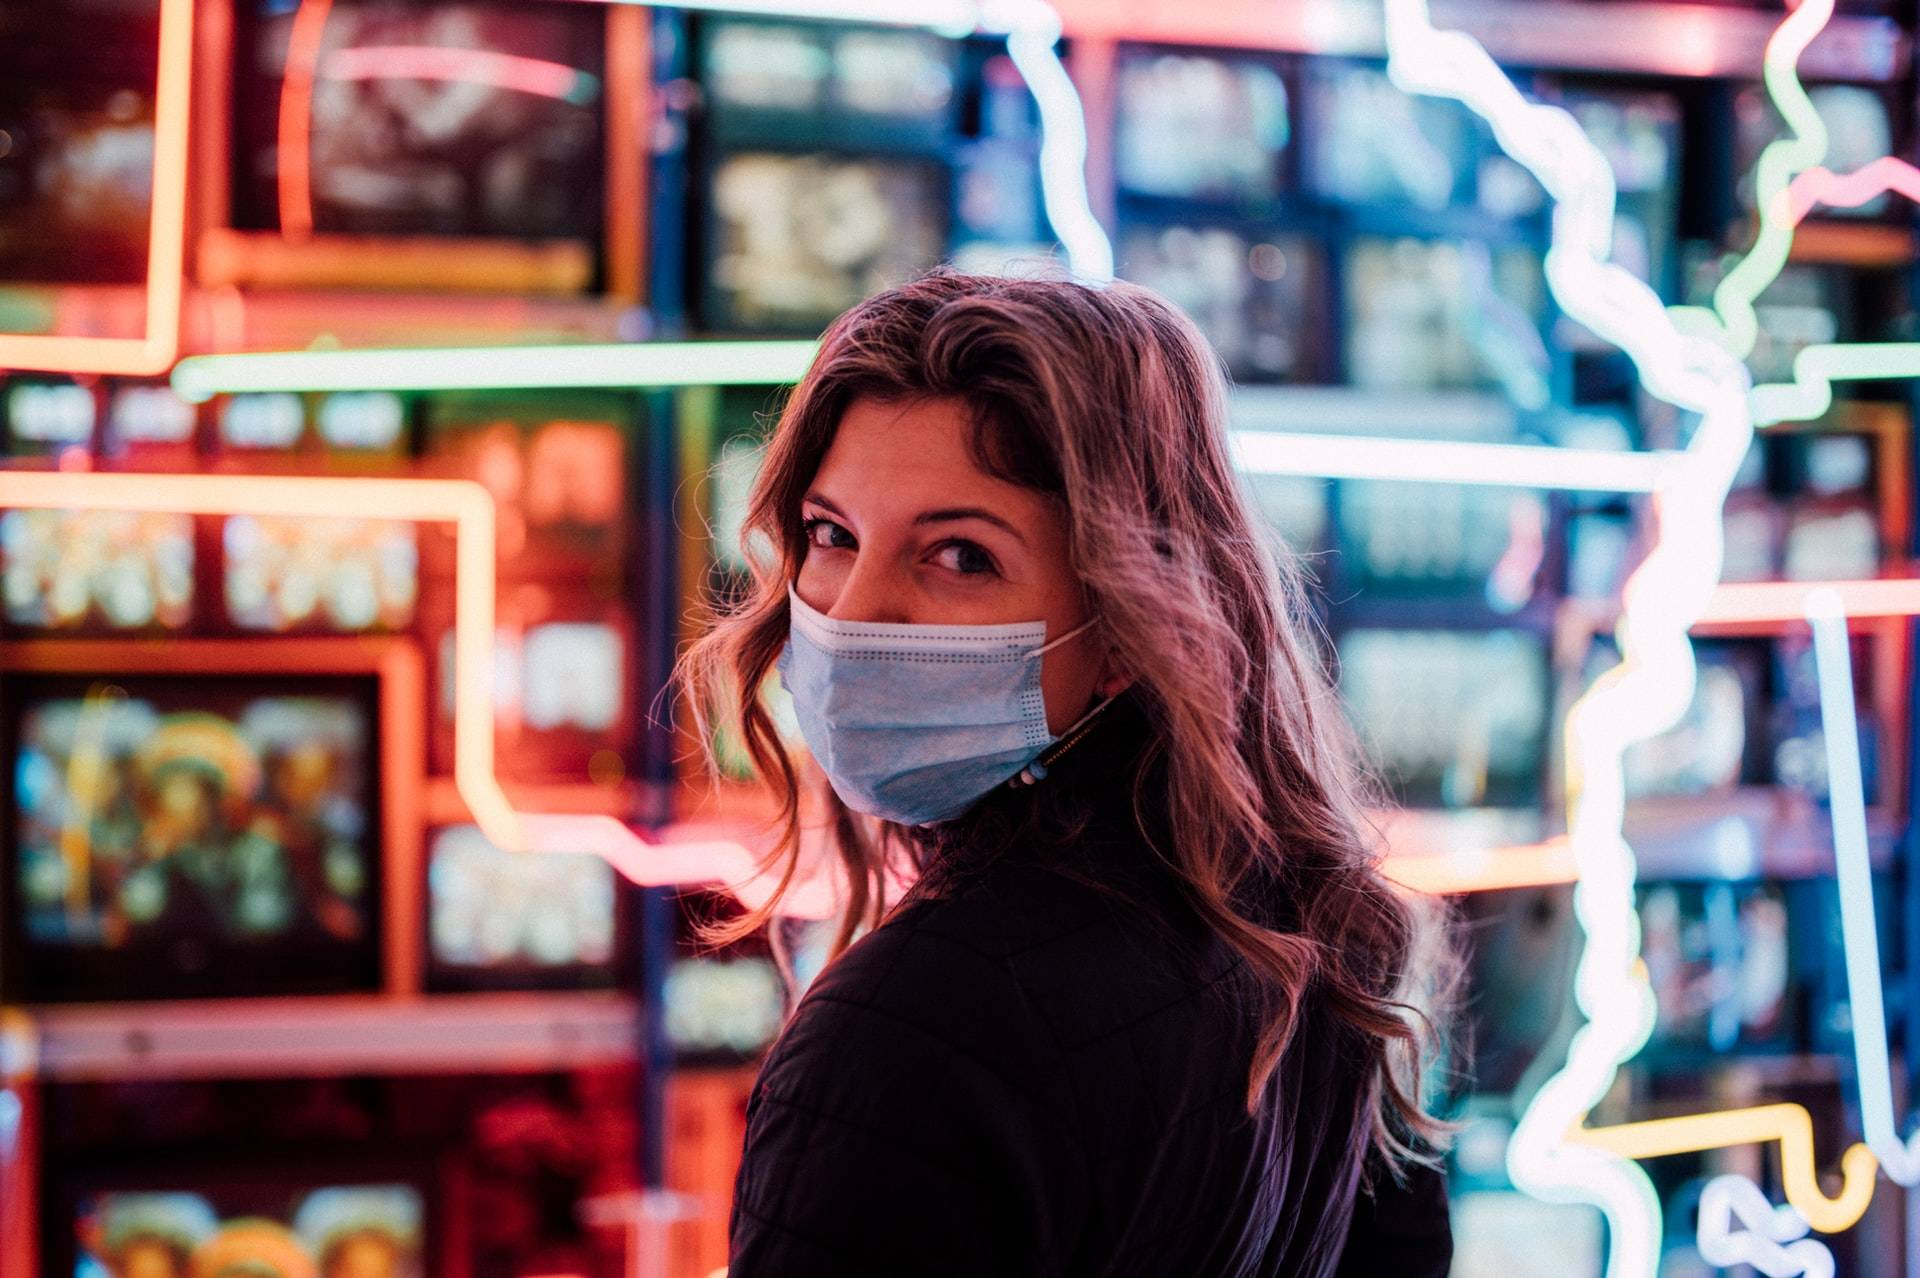 woman with medical mask looking back over her shoulder